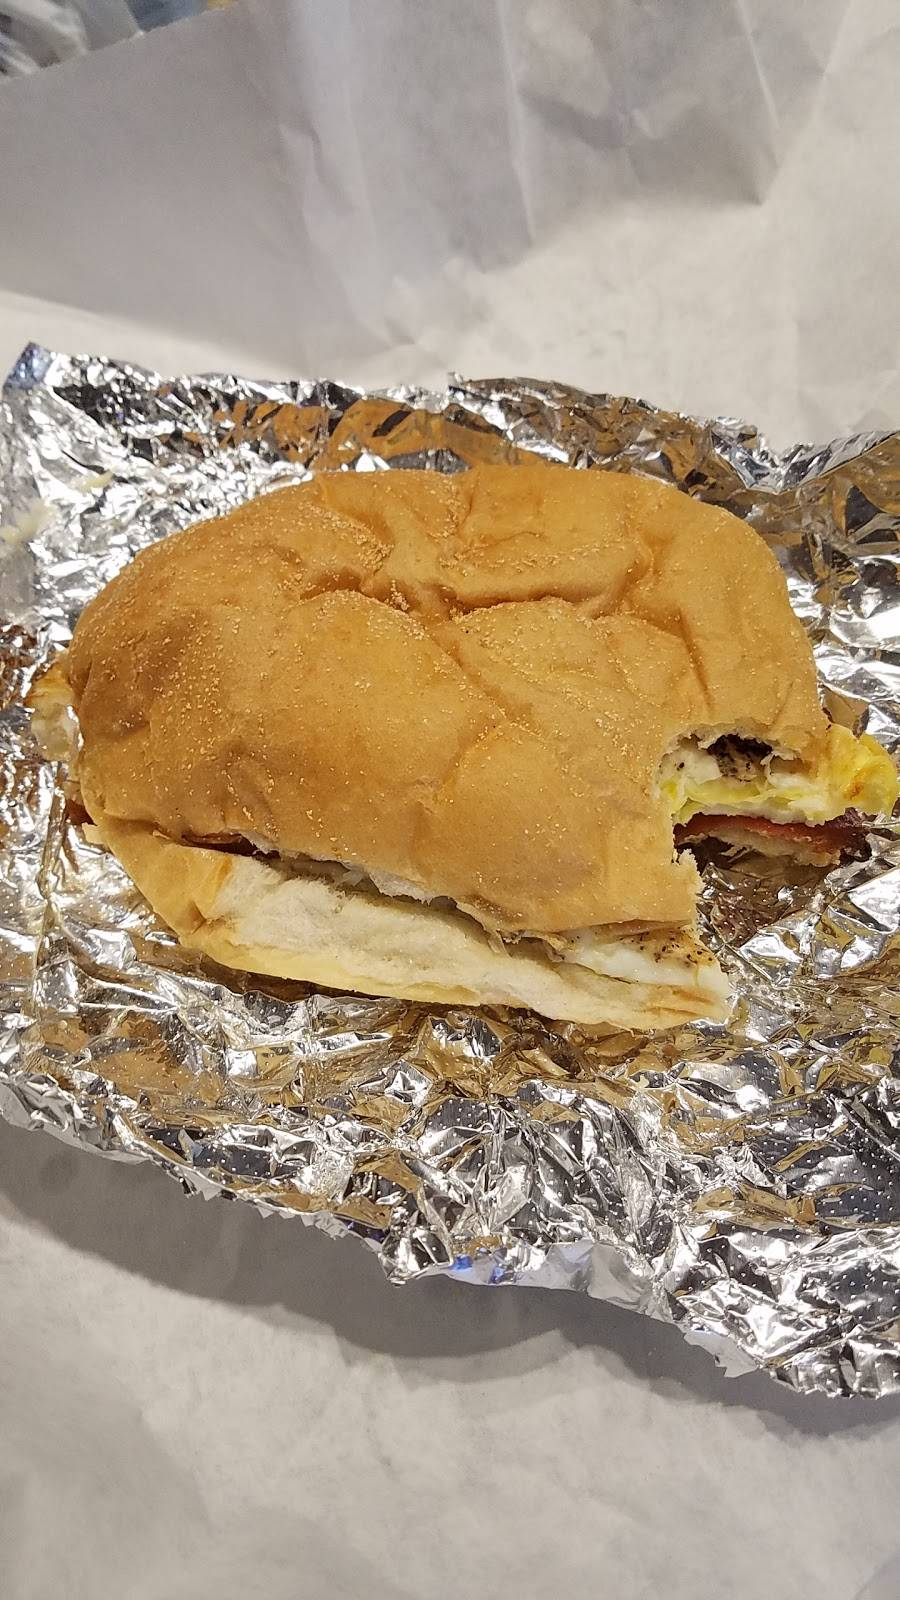 Saldamarcos   meal delivery   86 E Main St, Clinton, CT 06413, USA   8606693469 OR +1 860-669-3469